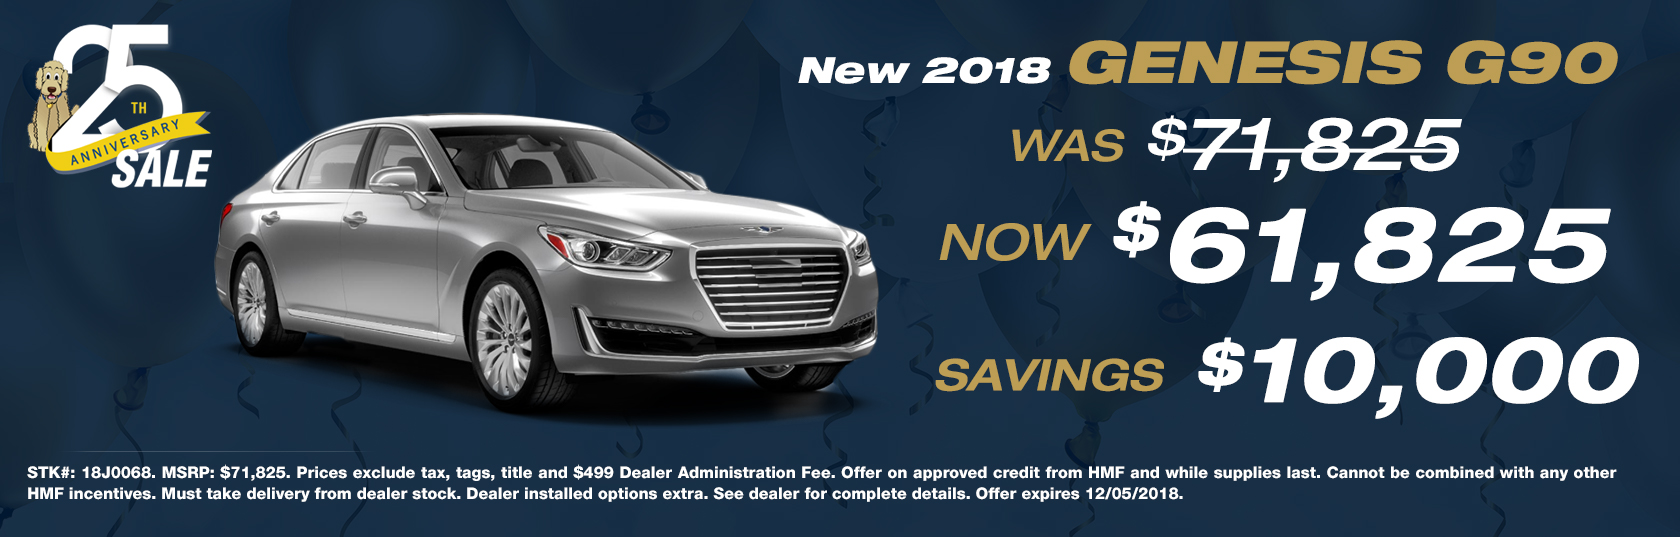 Genesis G90 Automotivepictures 4163321997sc1alternatorwirediagram1jpg Redeem This Offer